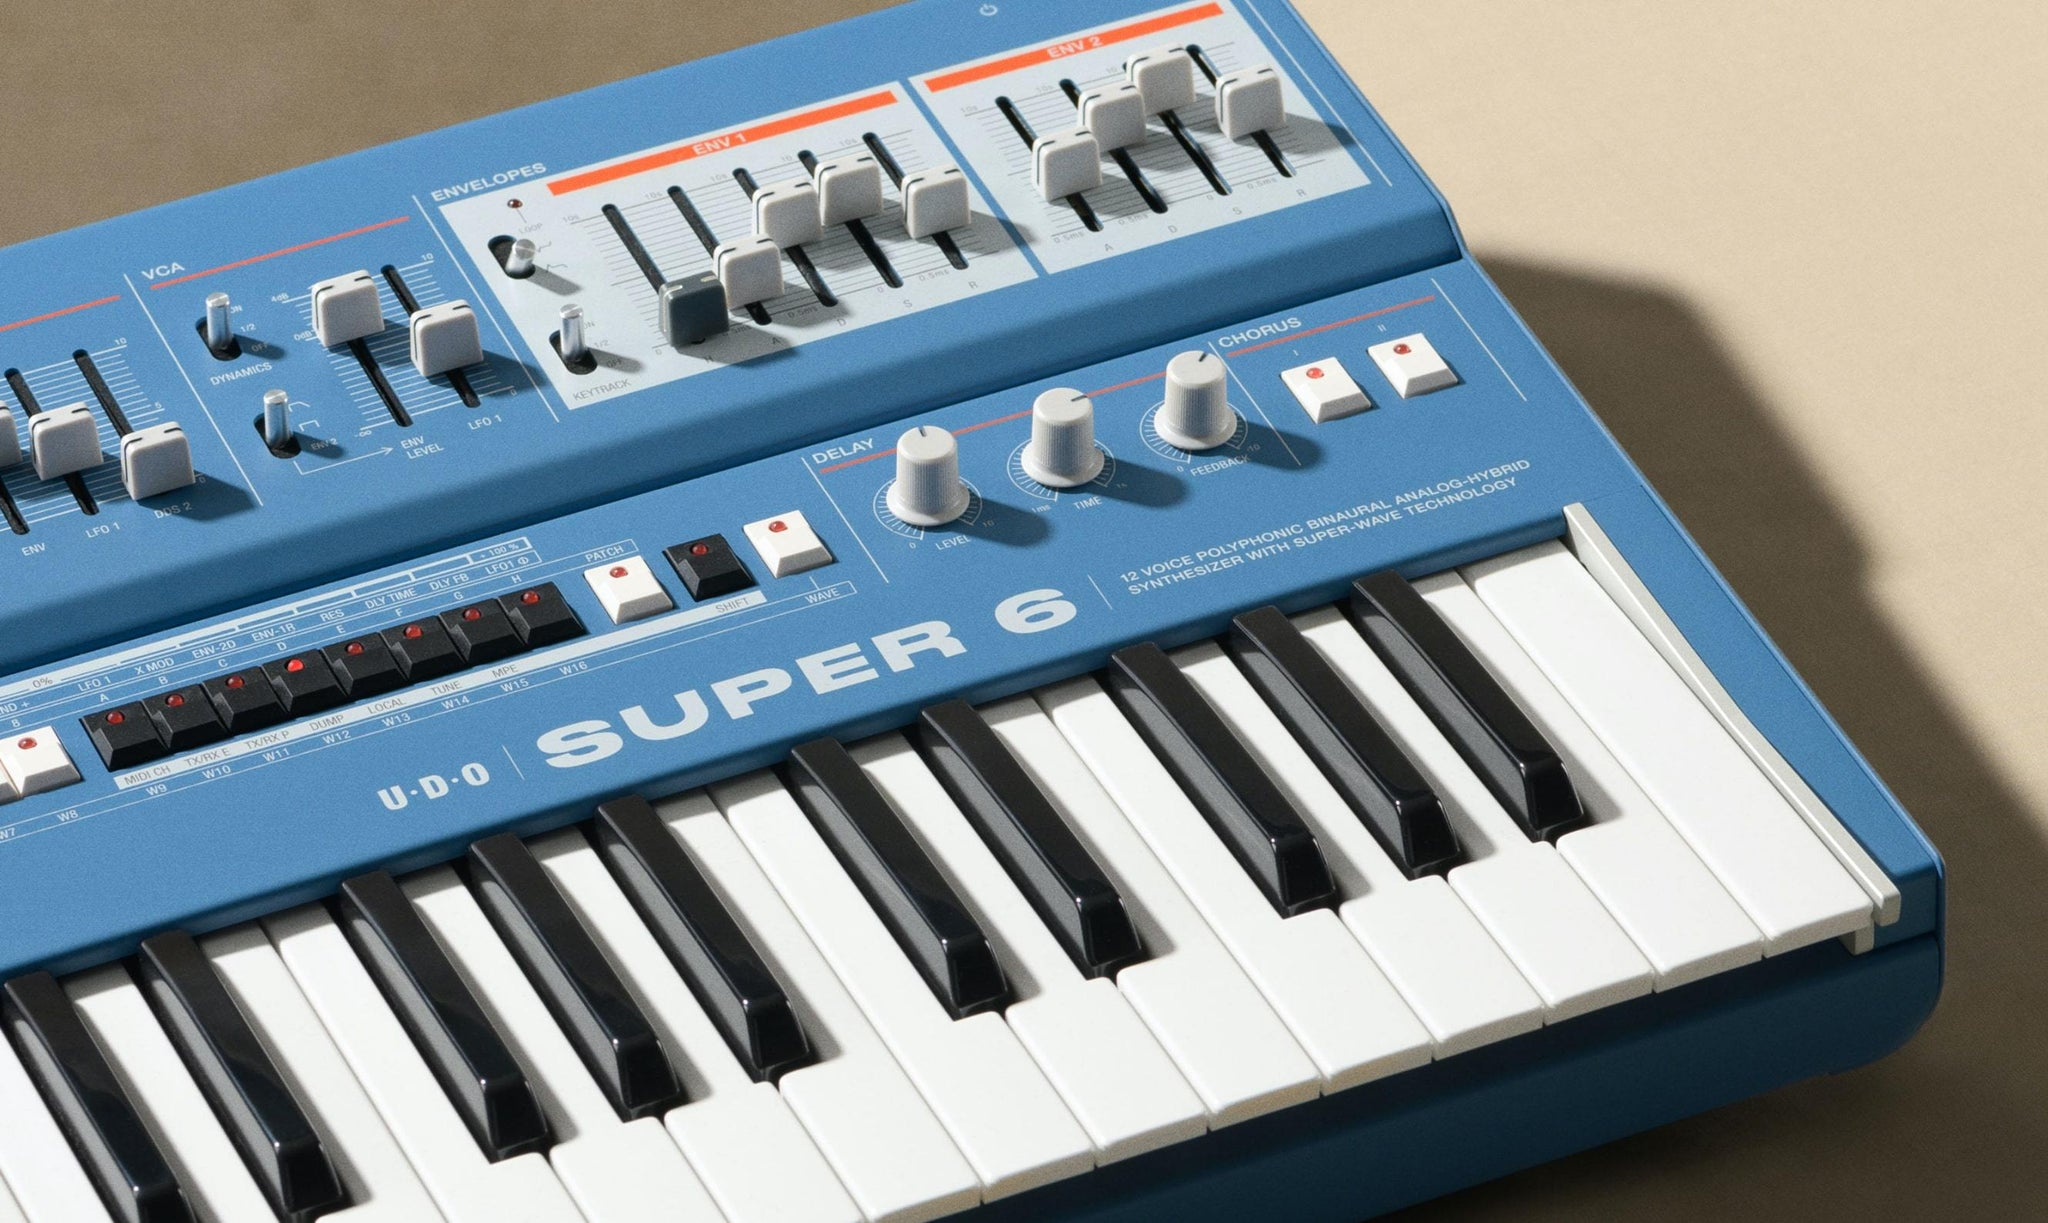 The Super 6 is a 12-voice polyphonic, binaural analog-hybrid synthesizer